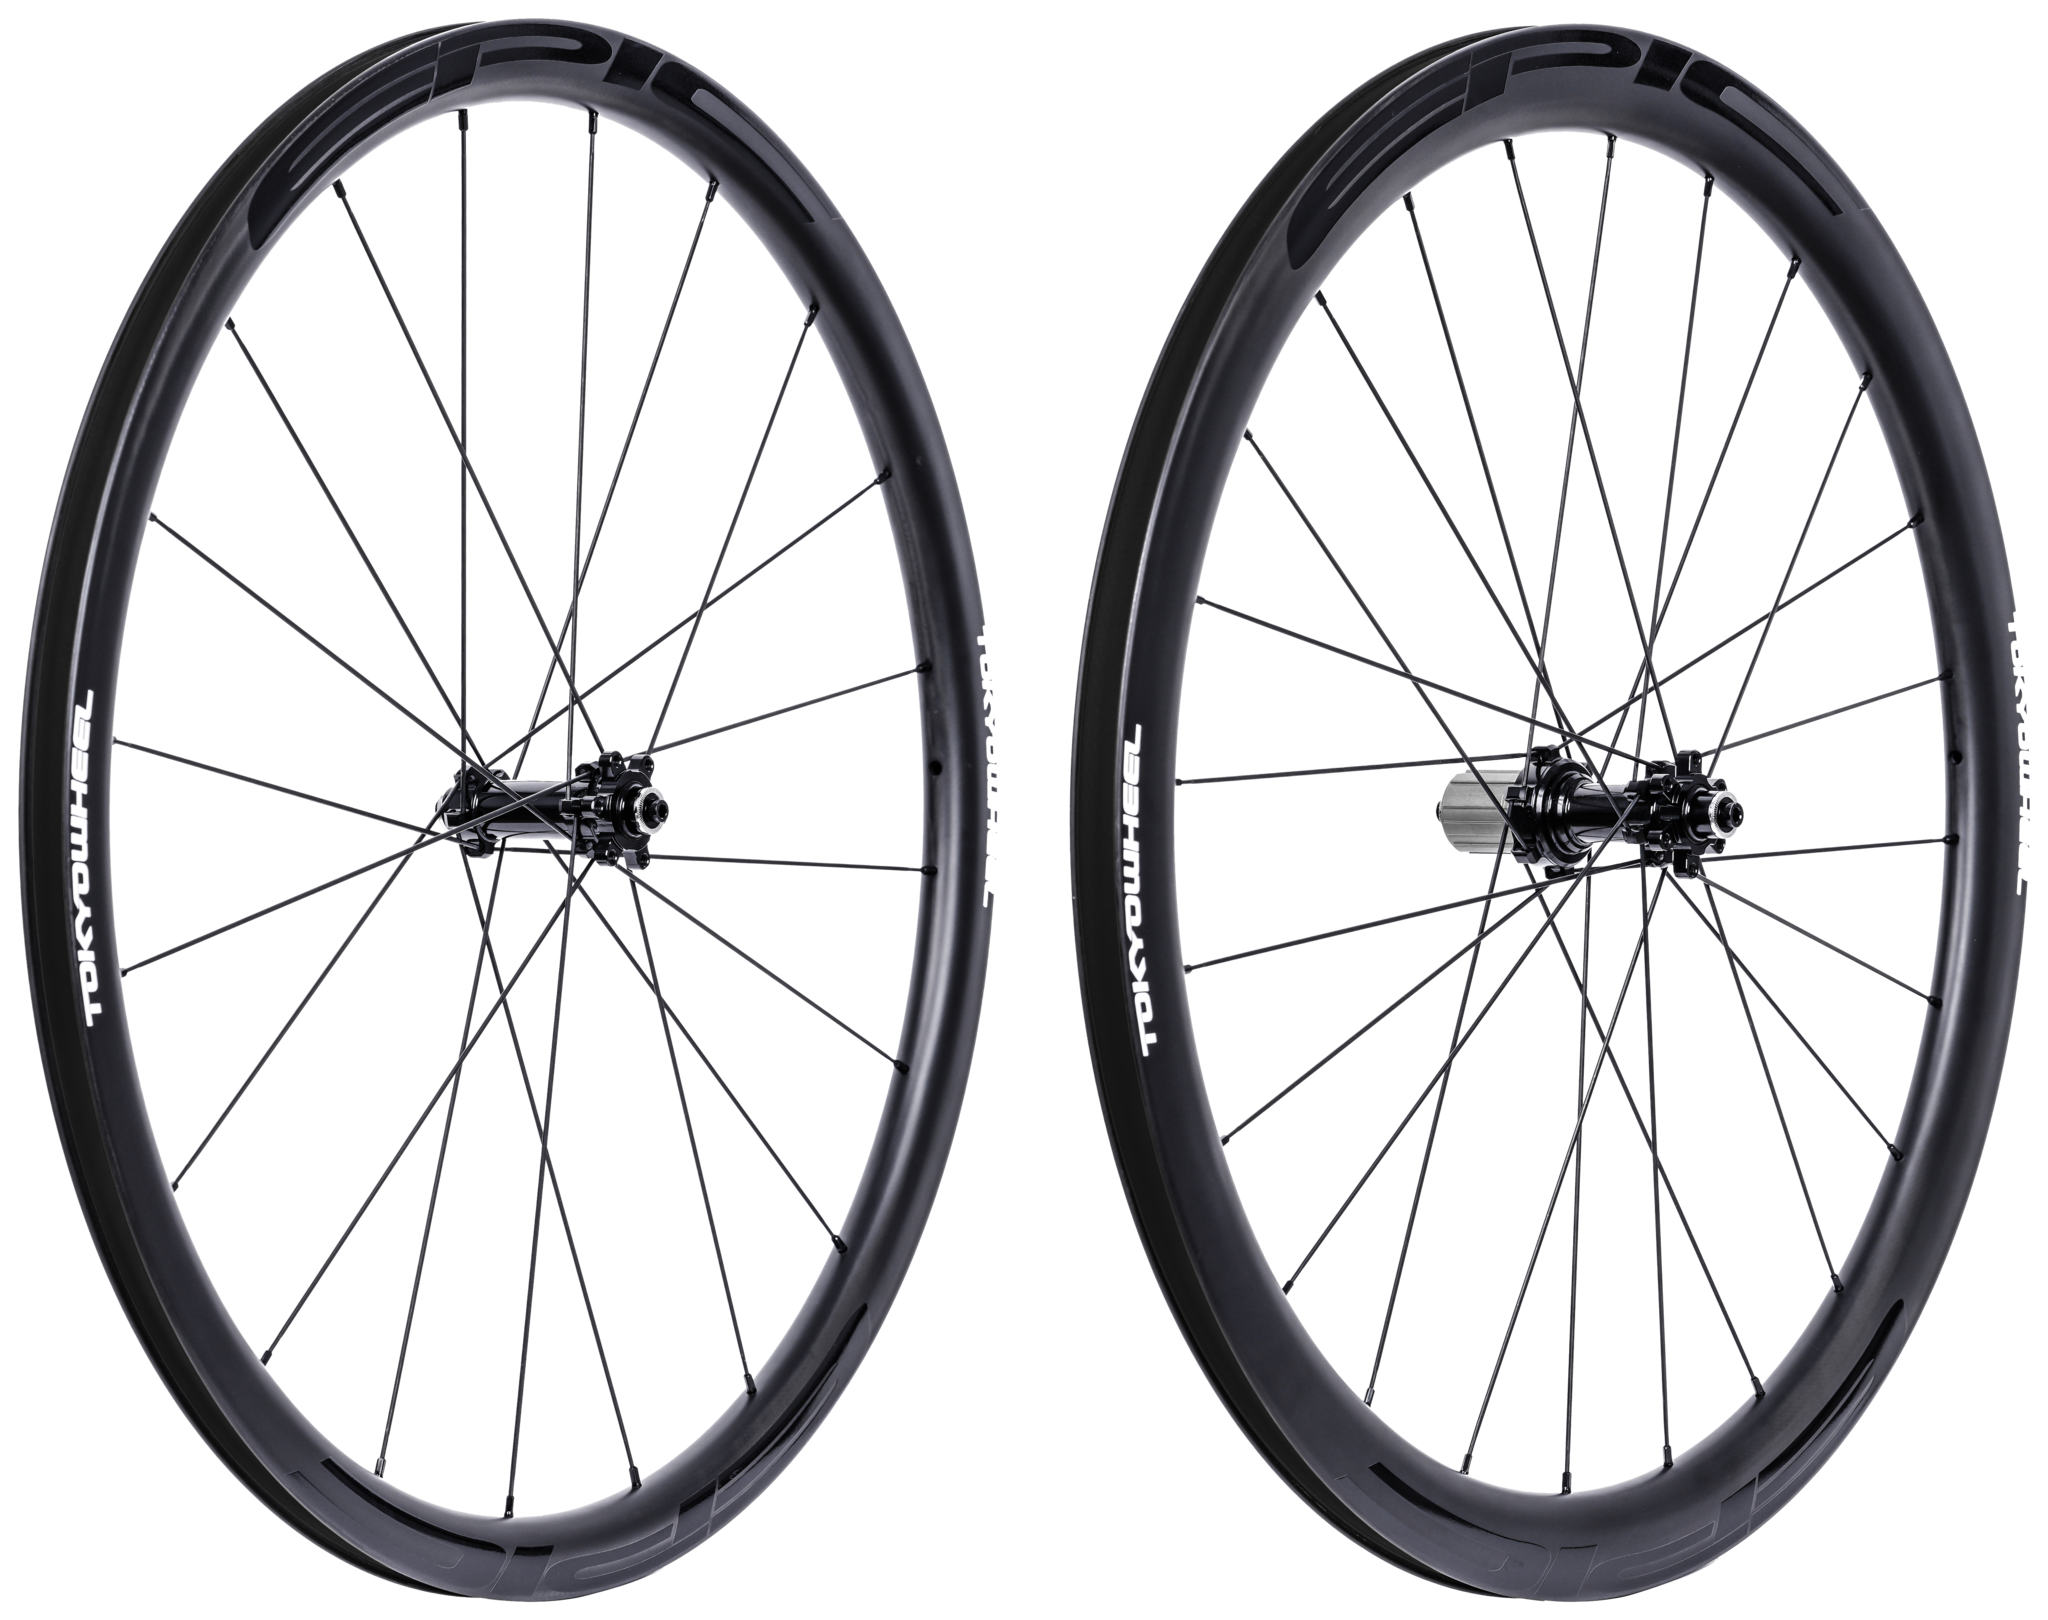 Tokyowheel epic 3 4 set disc non drive side angle extra